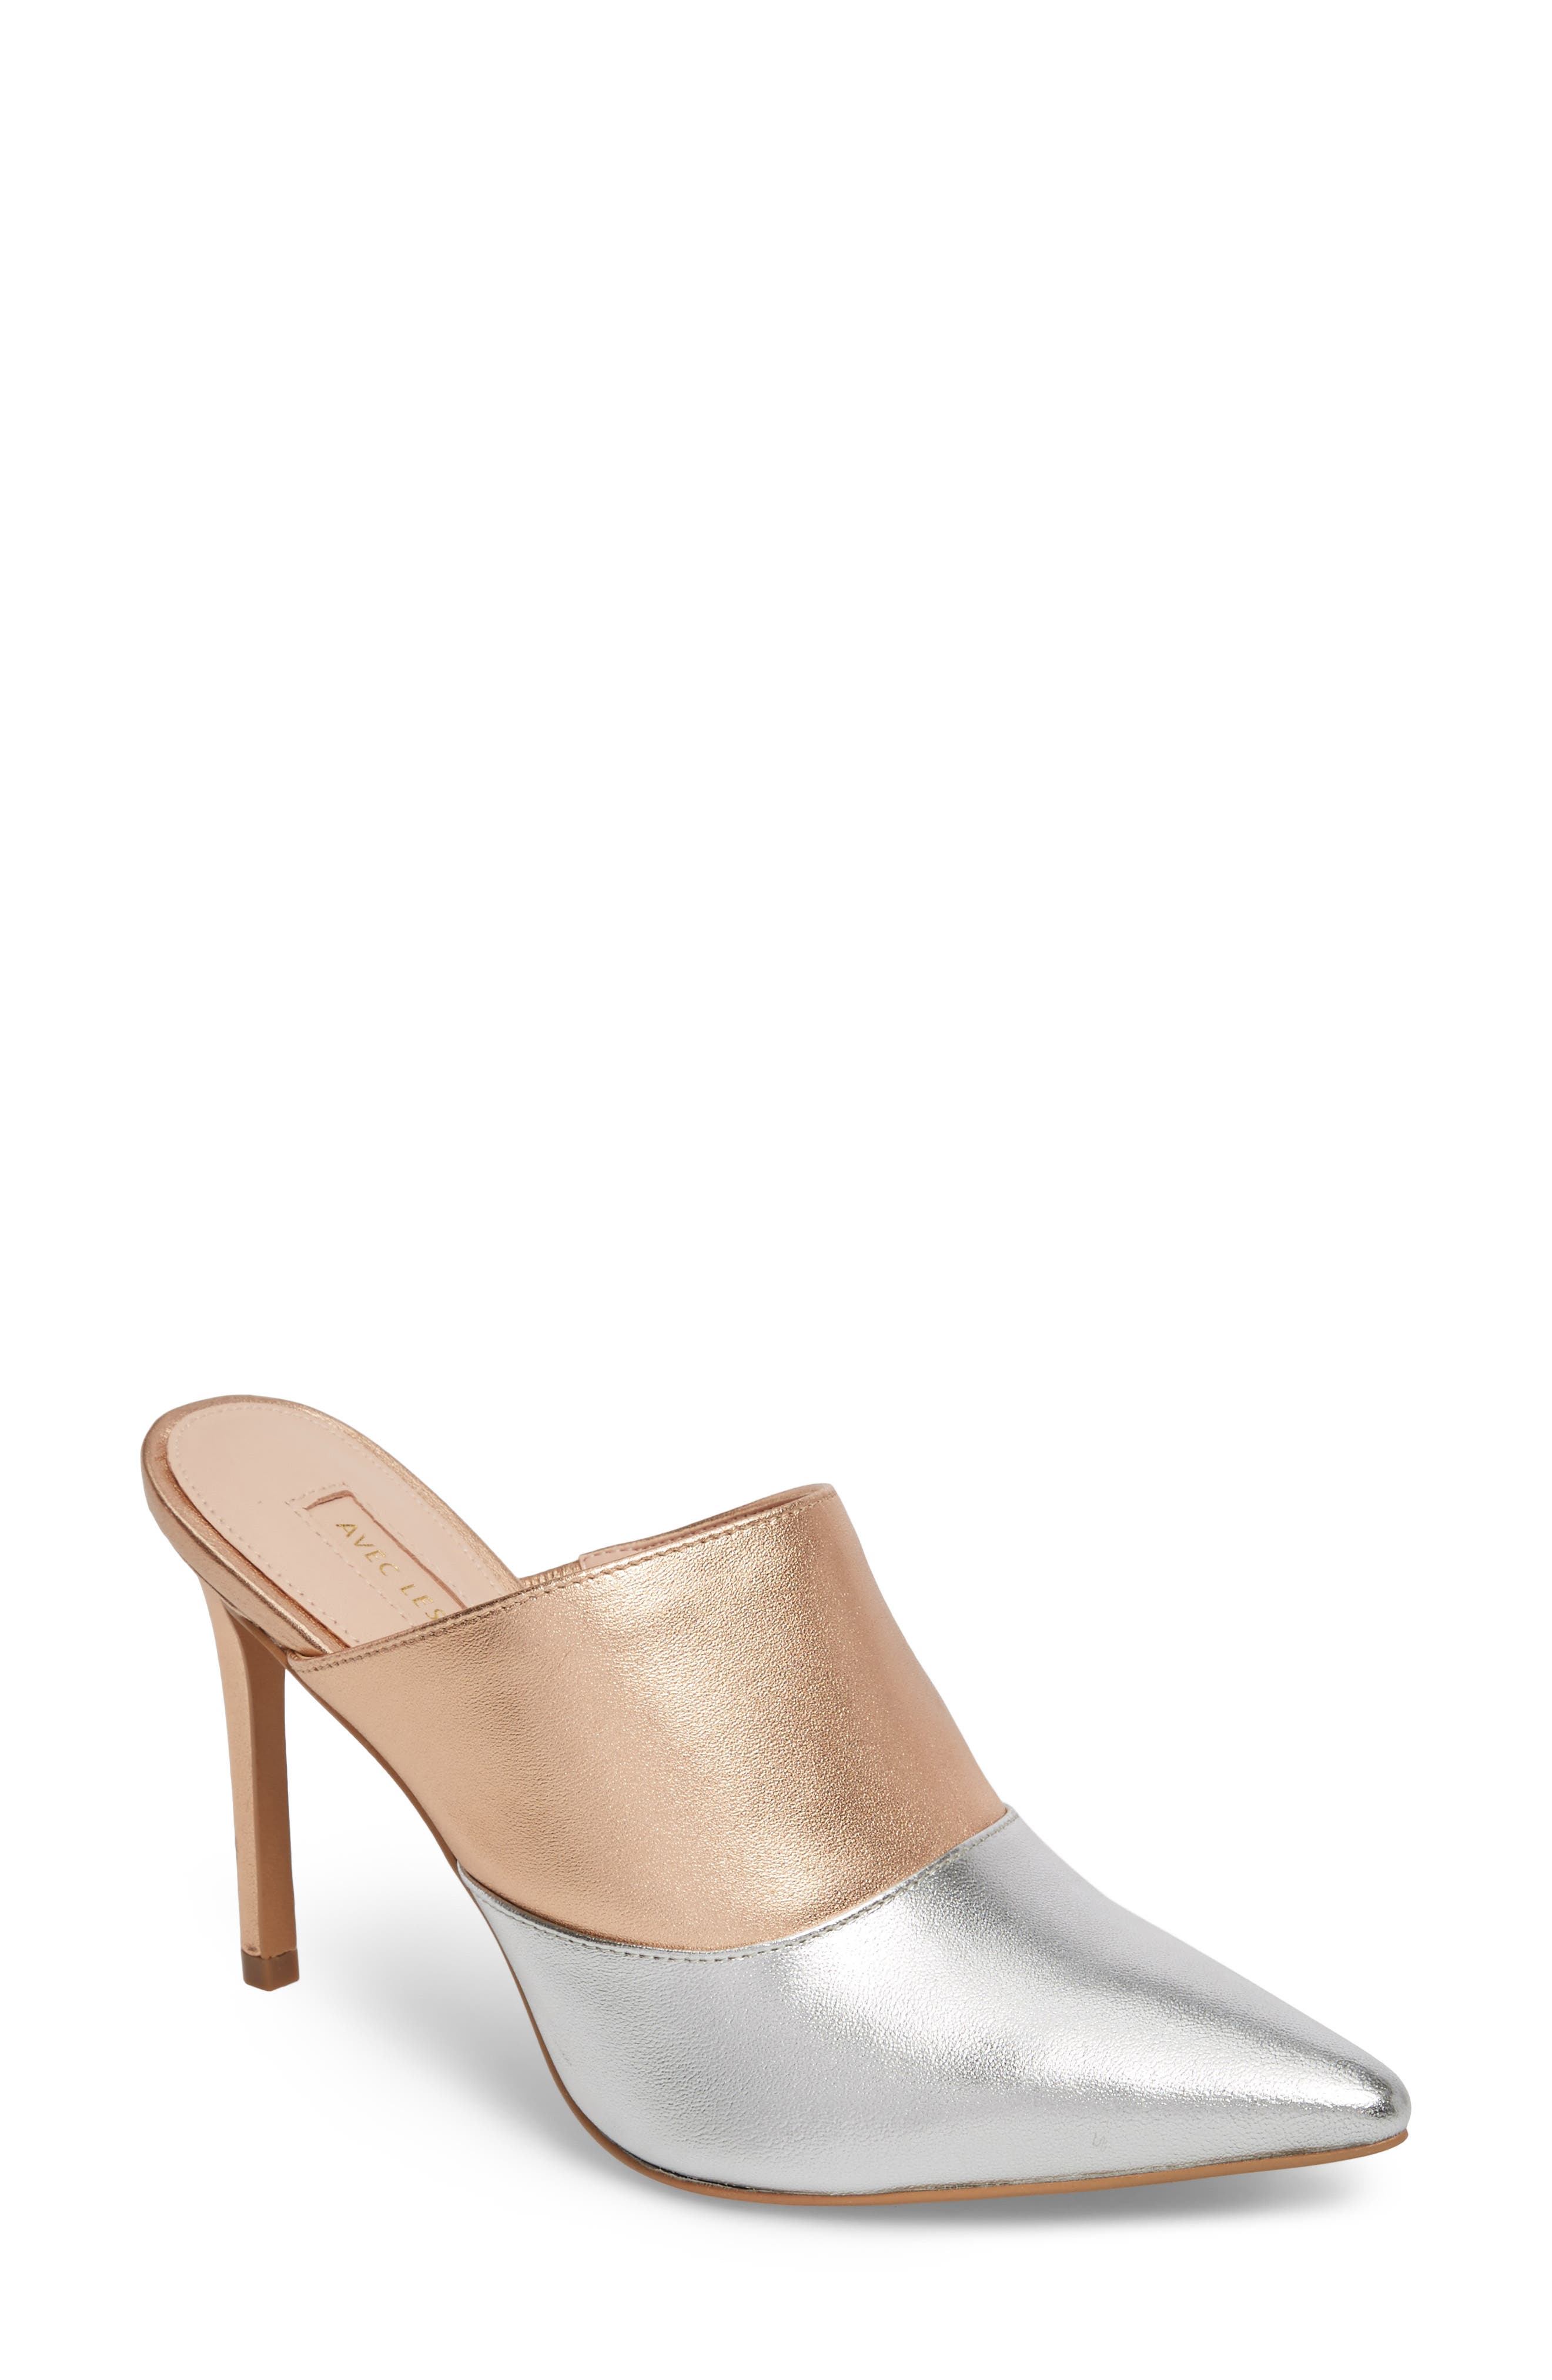 Joelle High Heel Mule,                         Main,                         color, Silver/ Rose Gold Leather